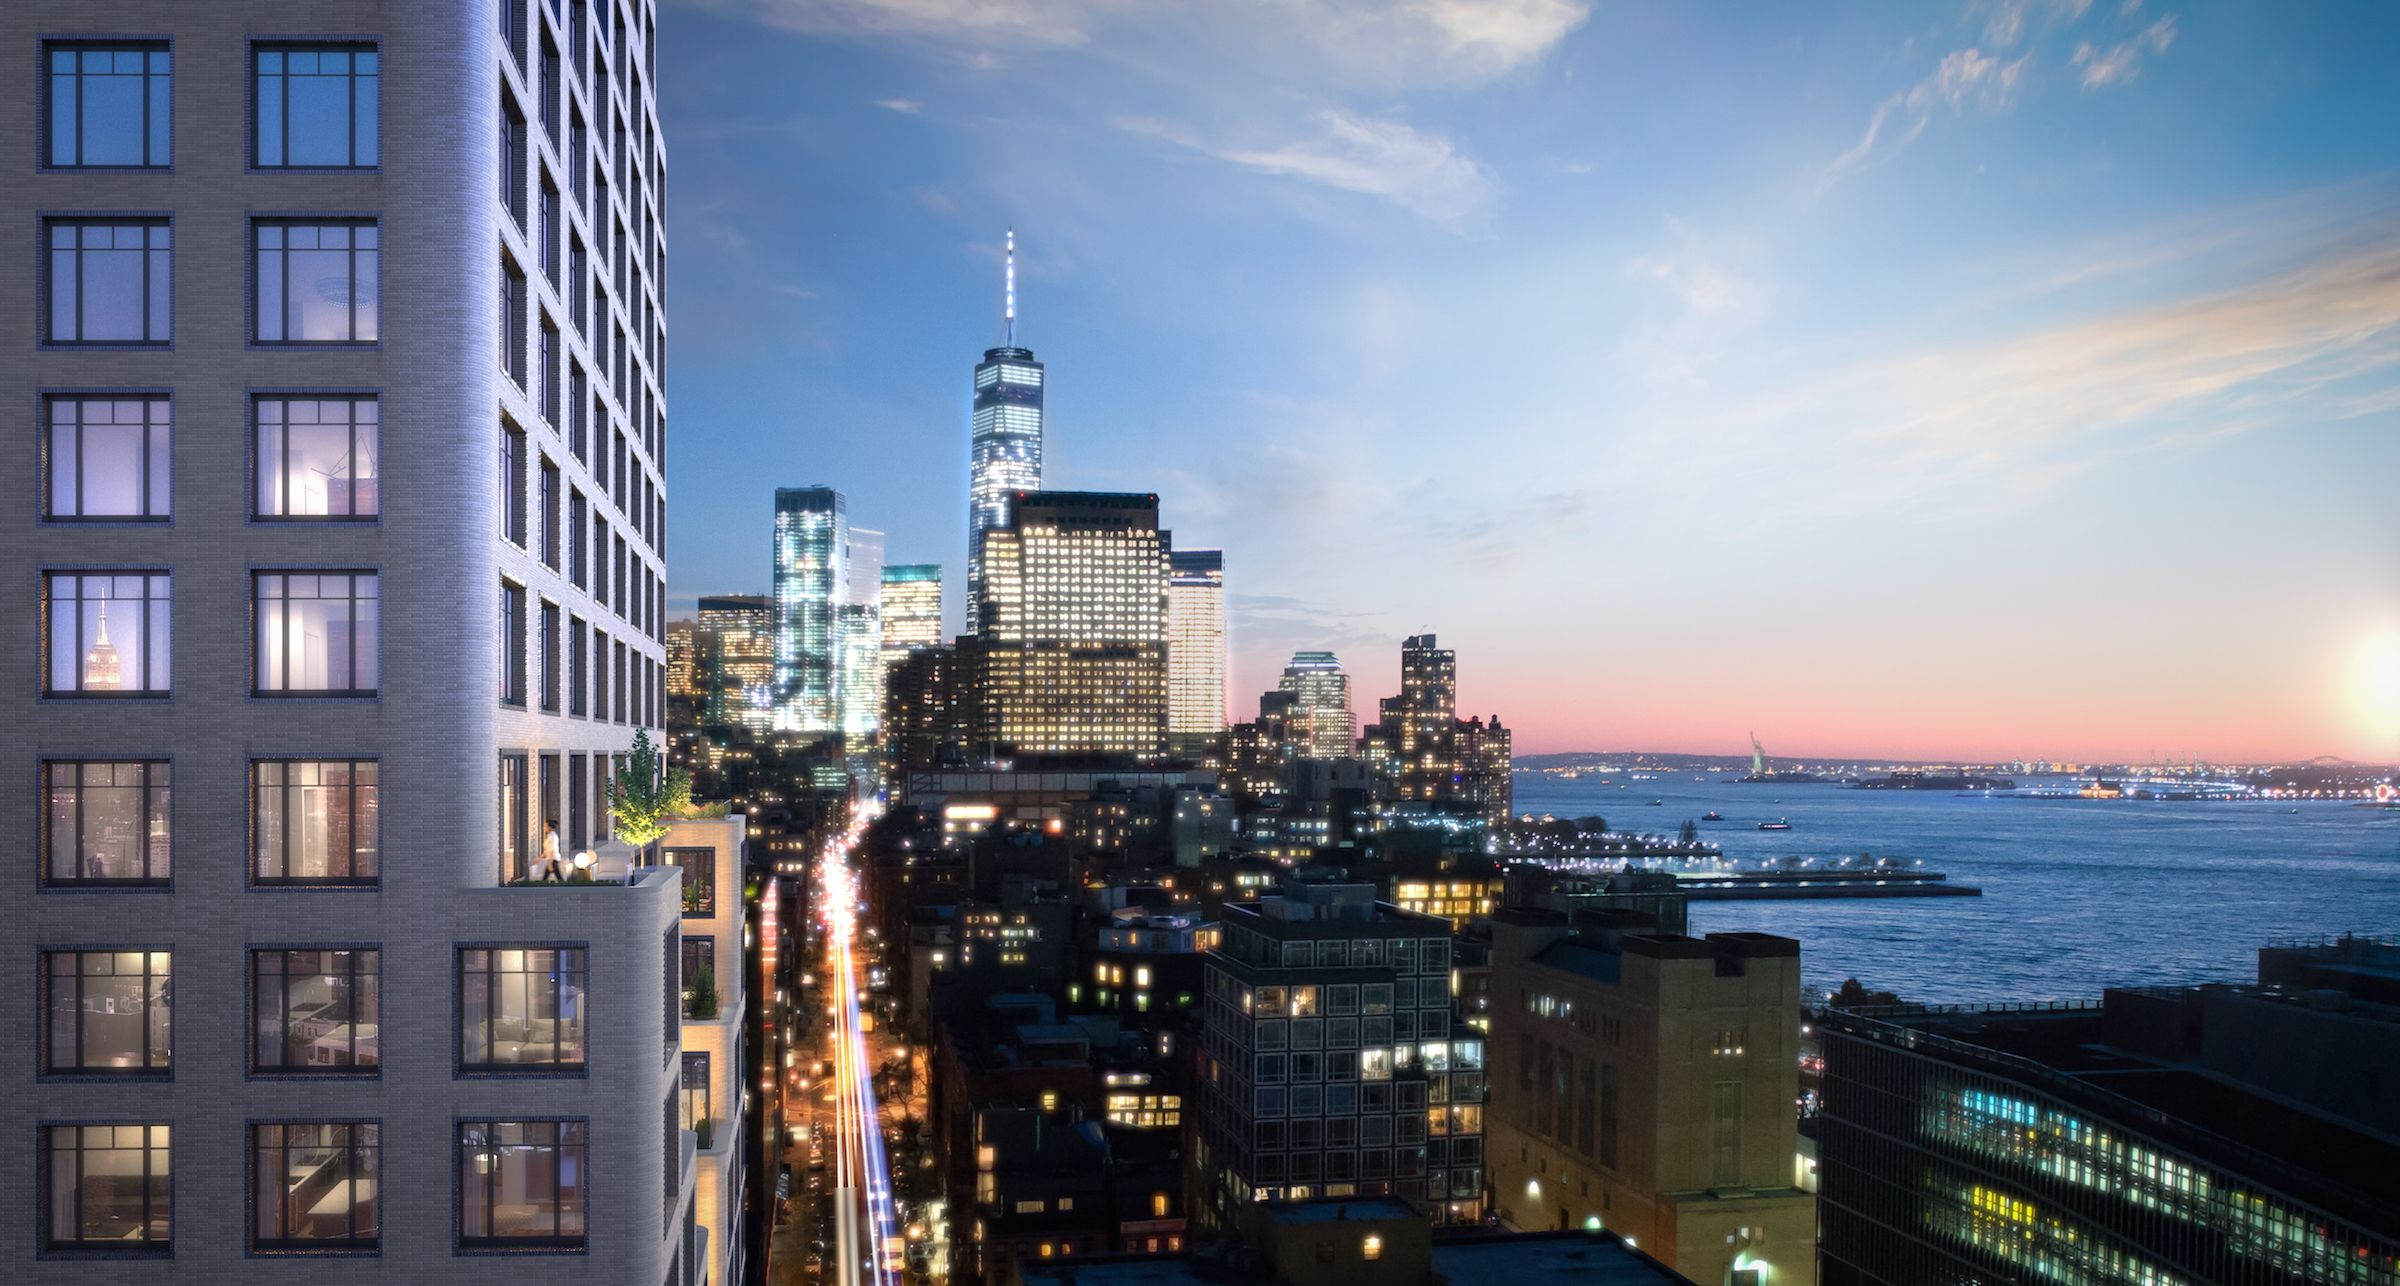 These Sunset Views at the New Greenwich West Building are Luxuriously Dreamy